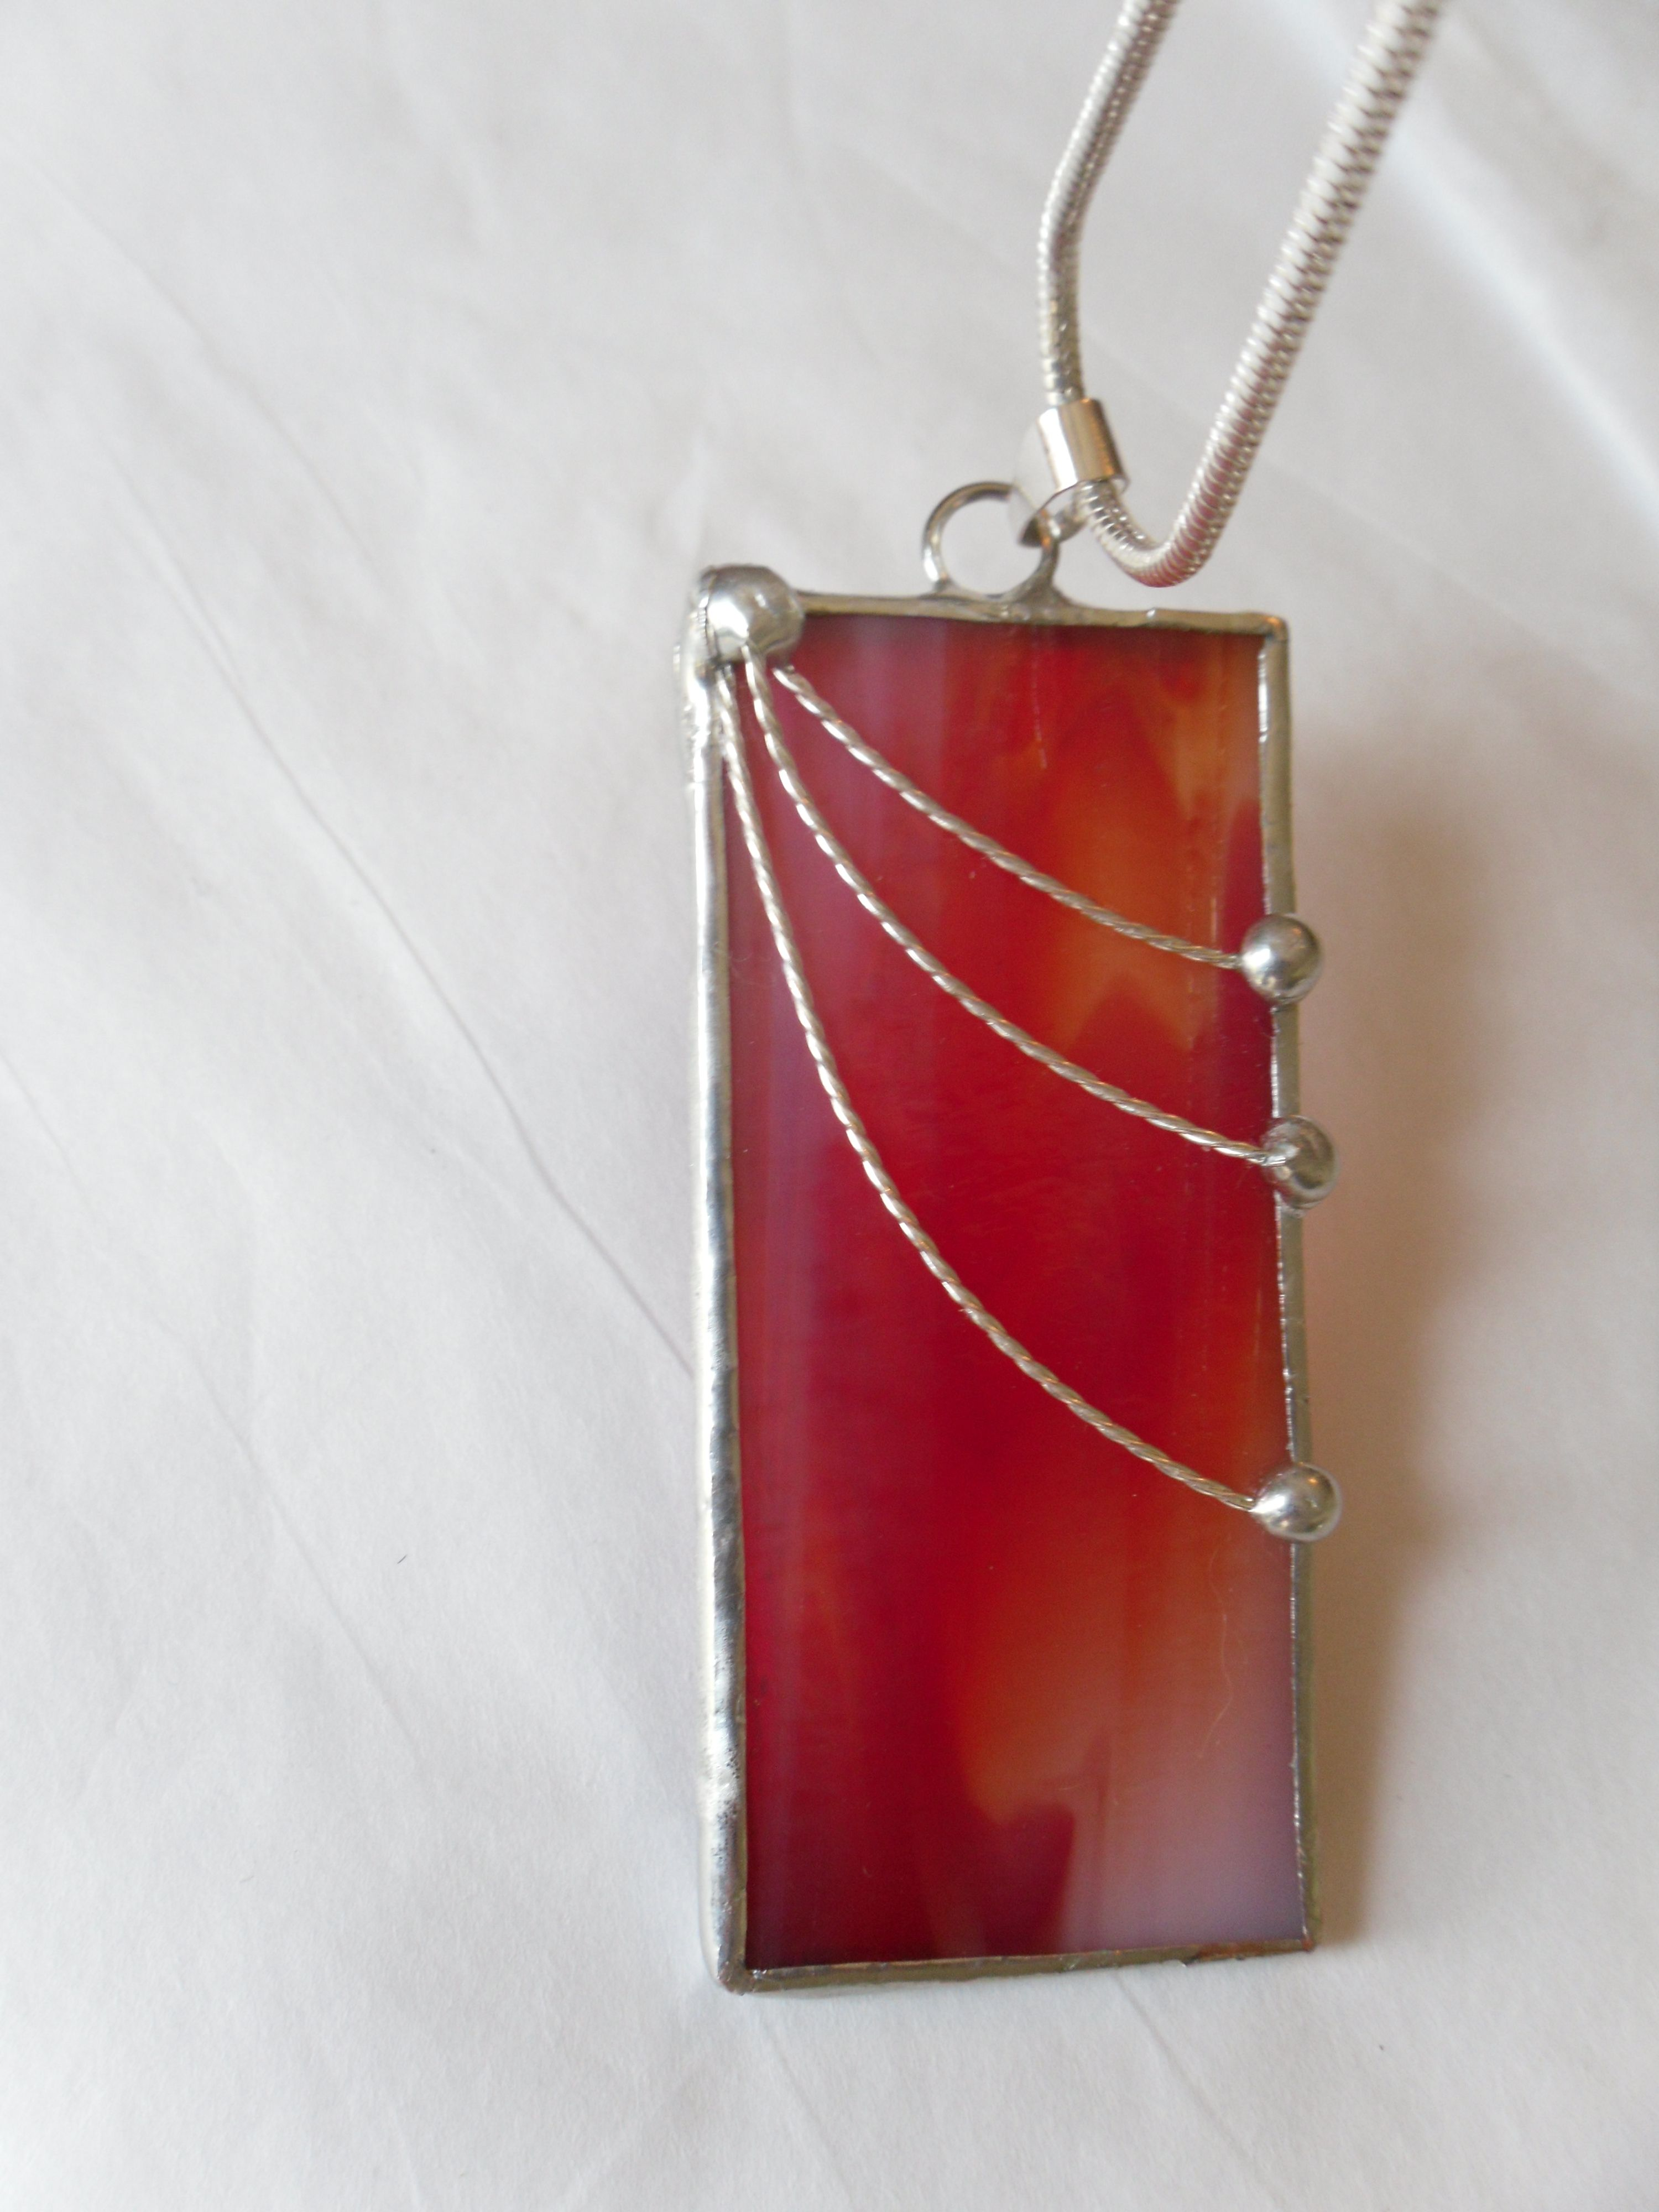 how to make stained glass pendants